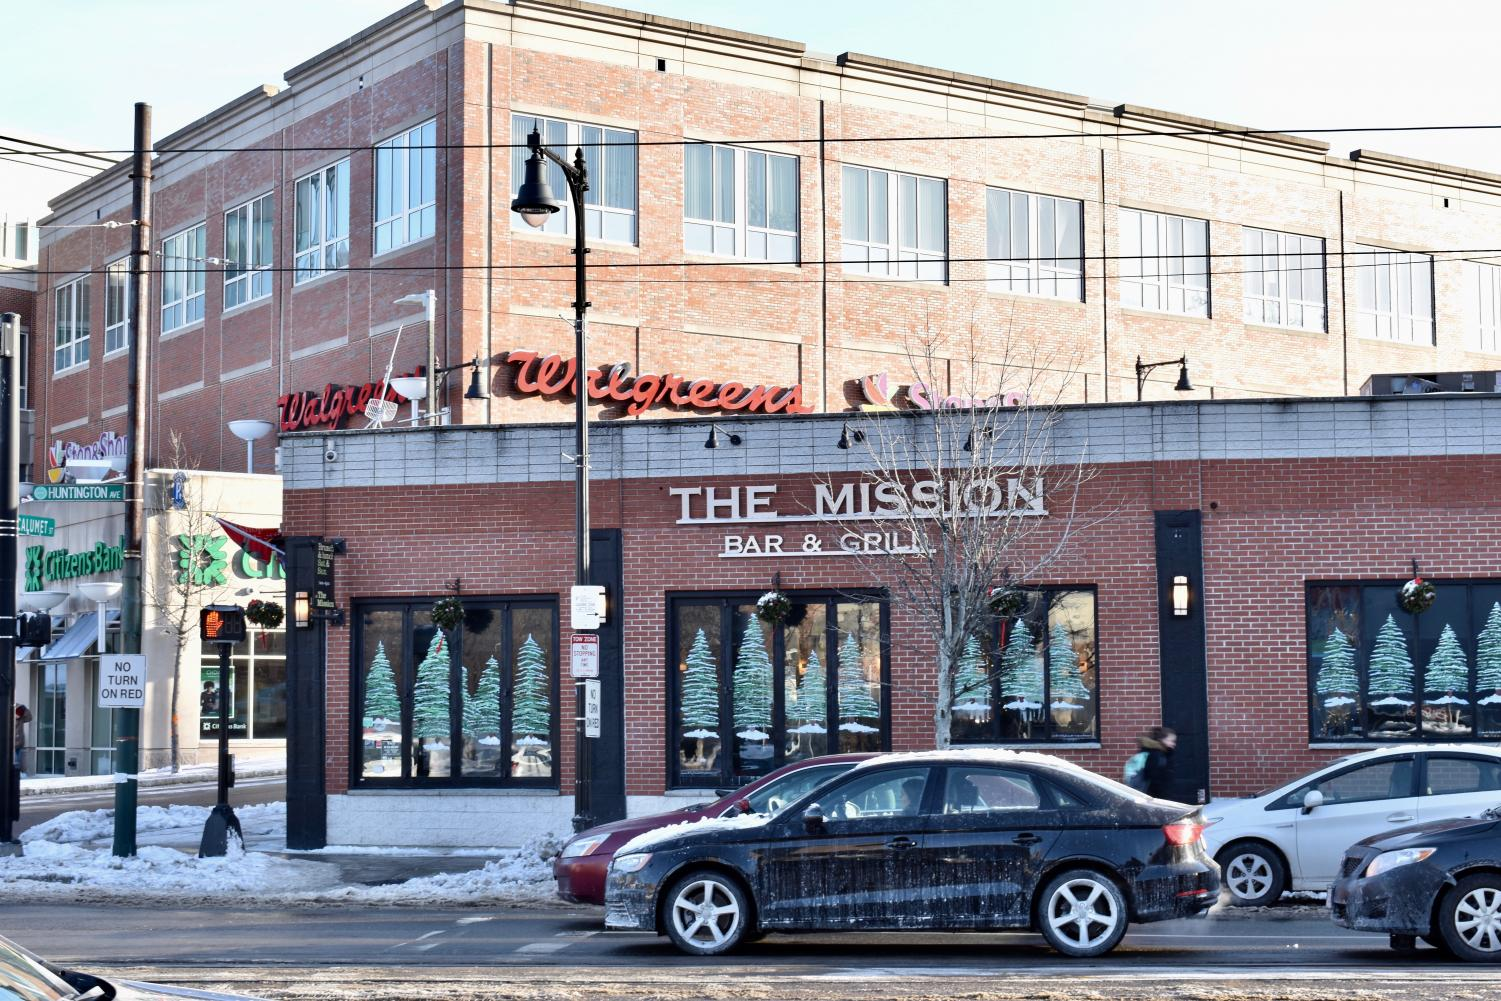 Establishments like The Mission Bar and Grill in Roxbury have had to adapt to rising costs in order to keep their doors open.